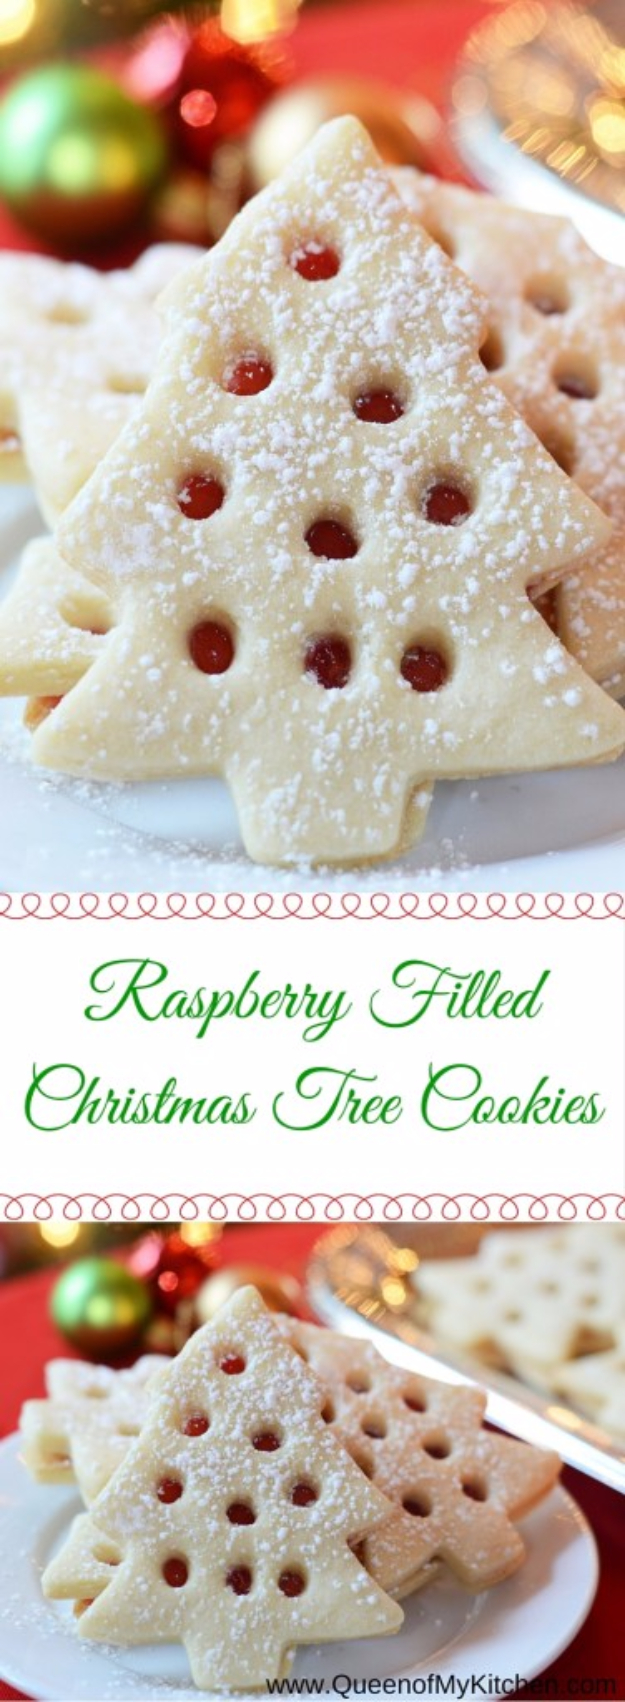 Best Recipes for Christmas Cookies- Raspberry Filled Christmas Tree Cookies - Easy Decorated Holiday Cookies - Candy Cookie Recipes Ideas for Kids - Traditional Favorites and Gluten Free and Healthy Versions - Quick No Bake Cookies and Last Minute Desserts for the Holidays